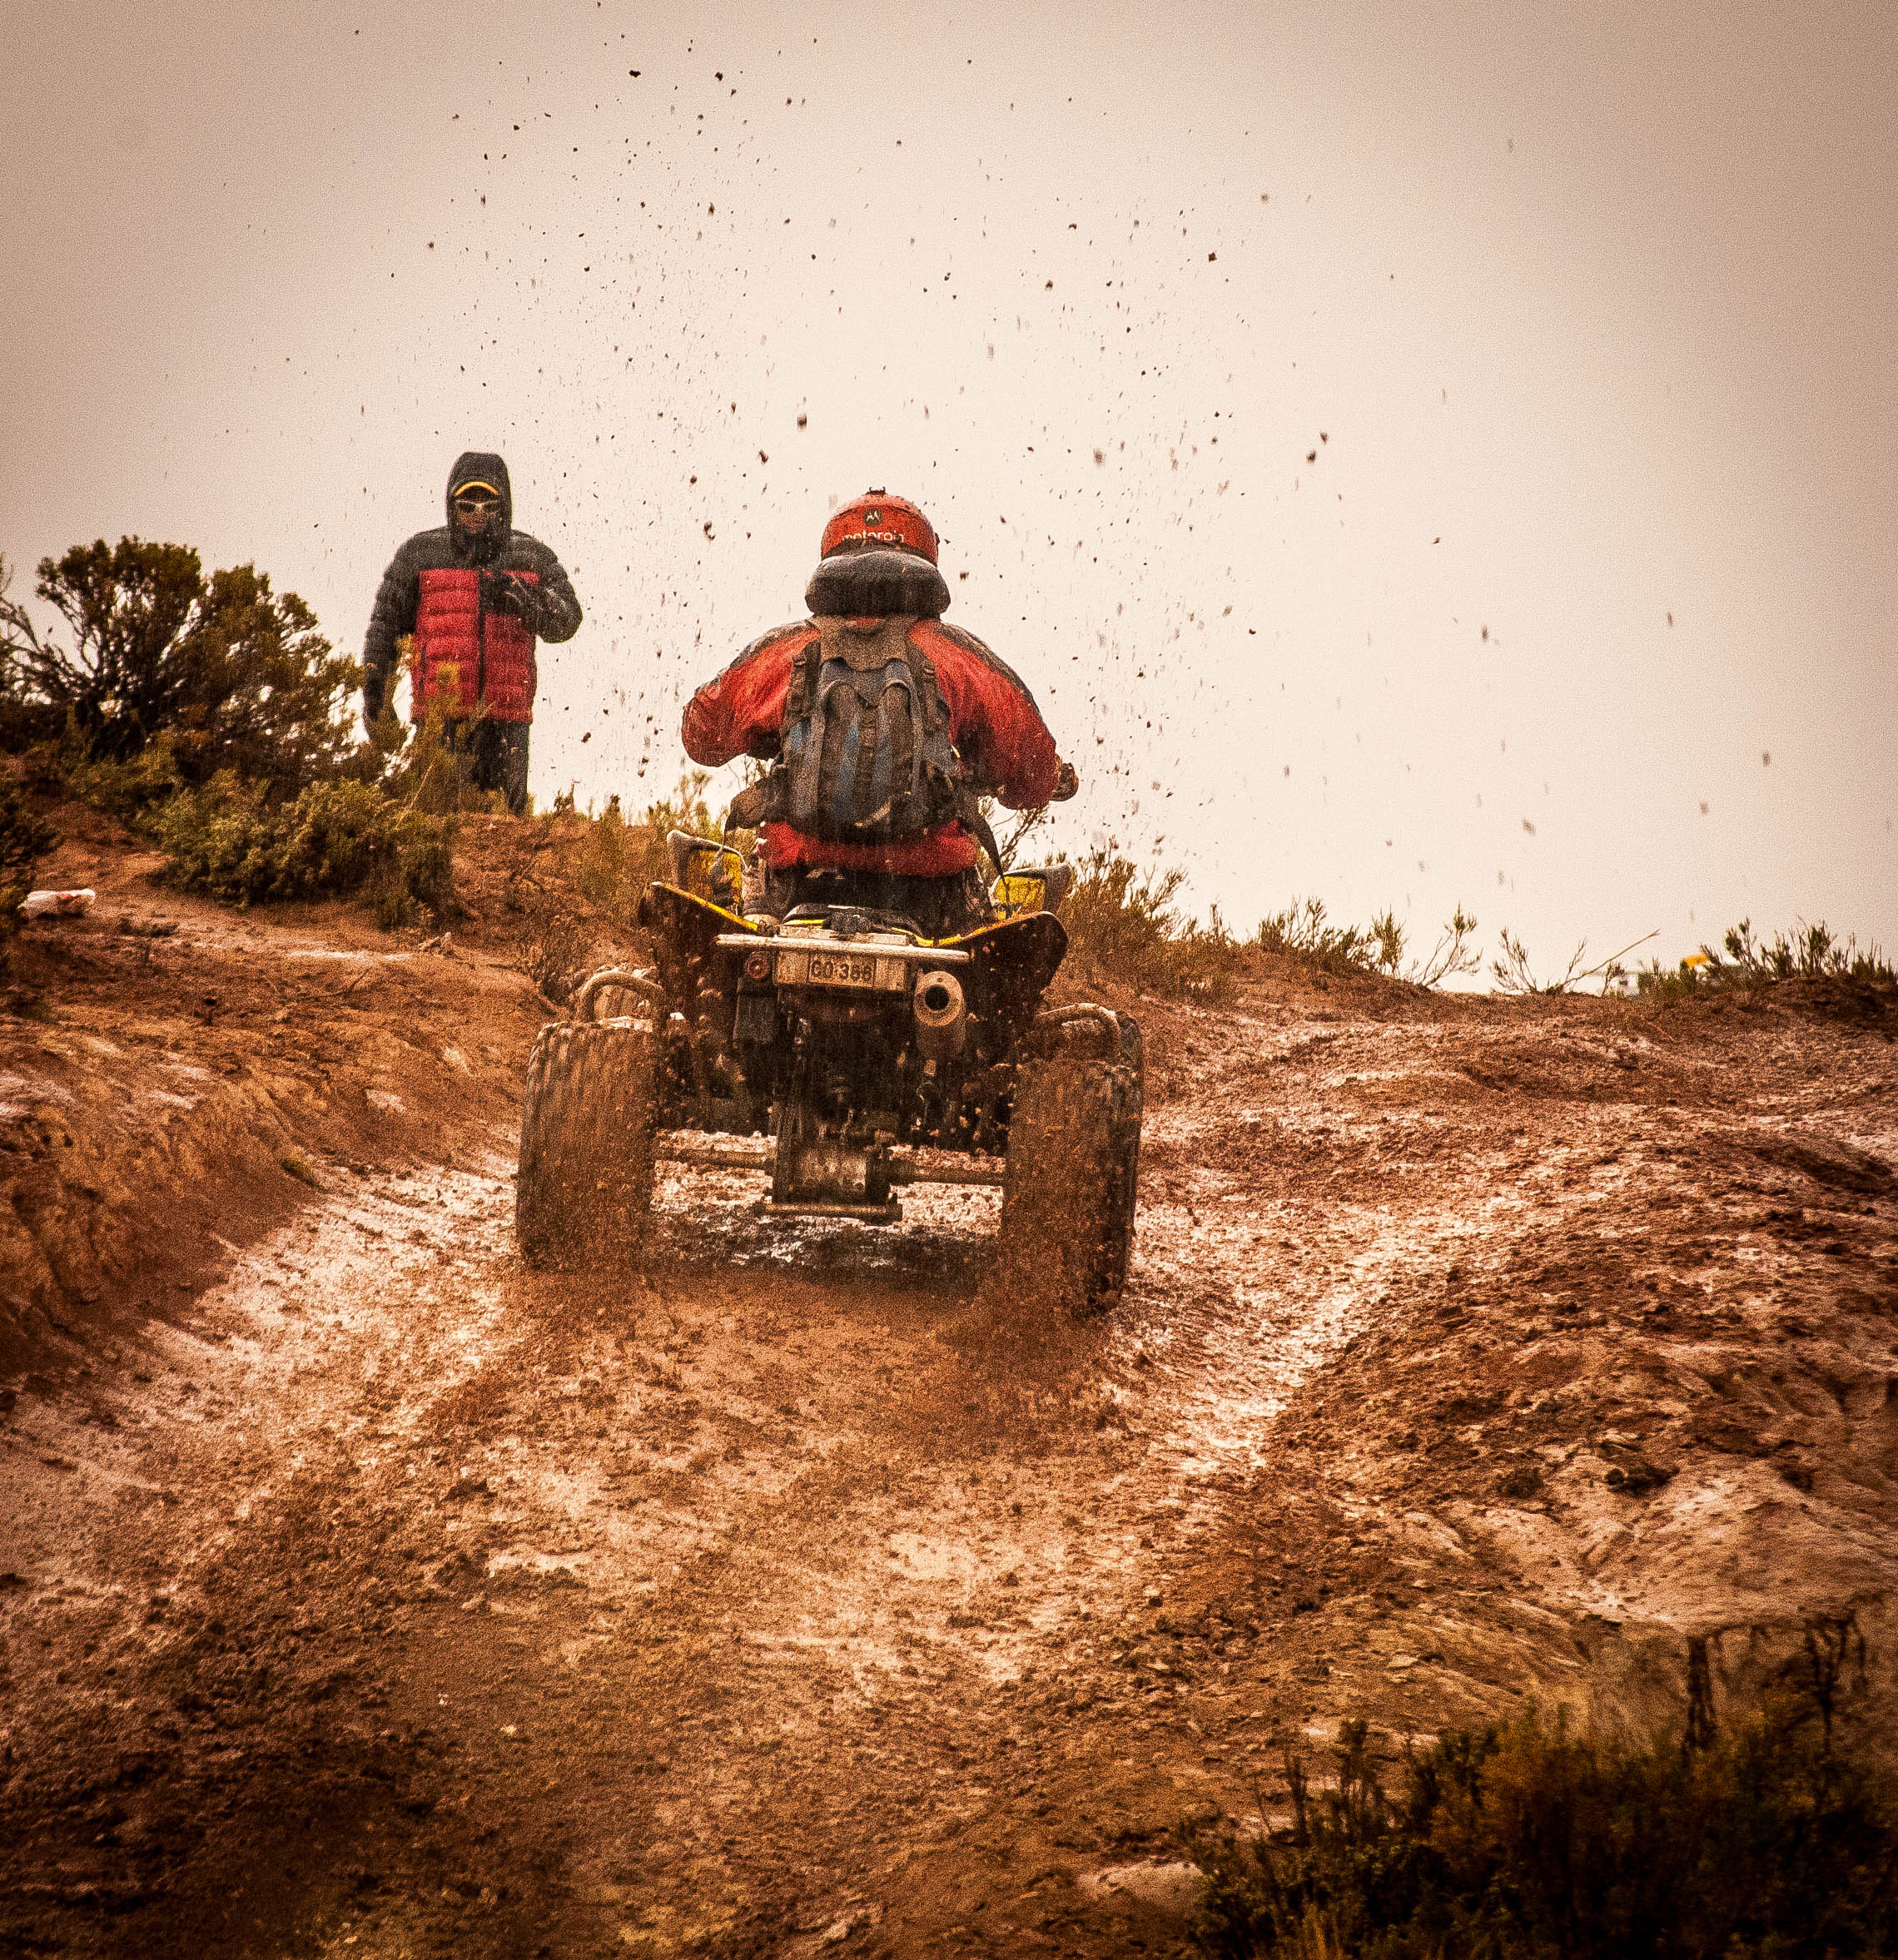 The Dakar Rally, A2A Expedition